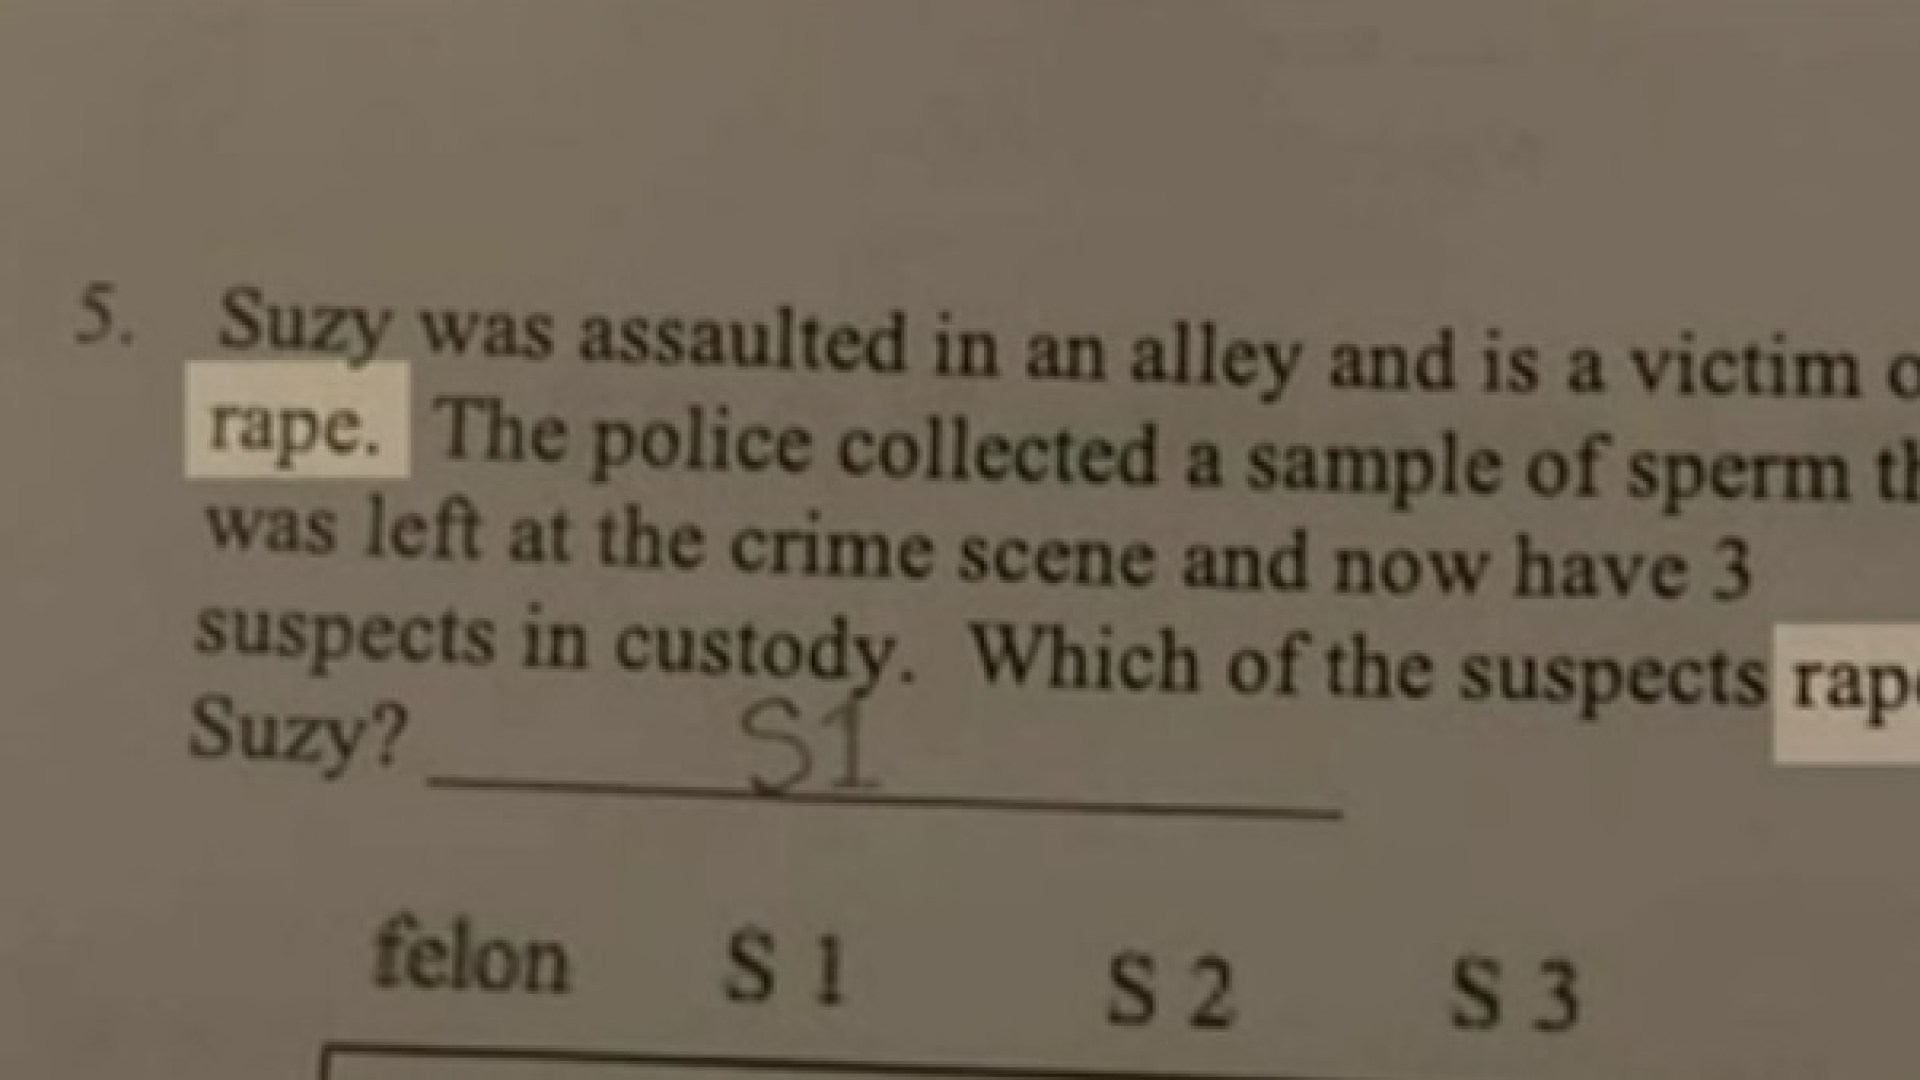 Question about rape put on biology homework for Texas 9th graders